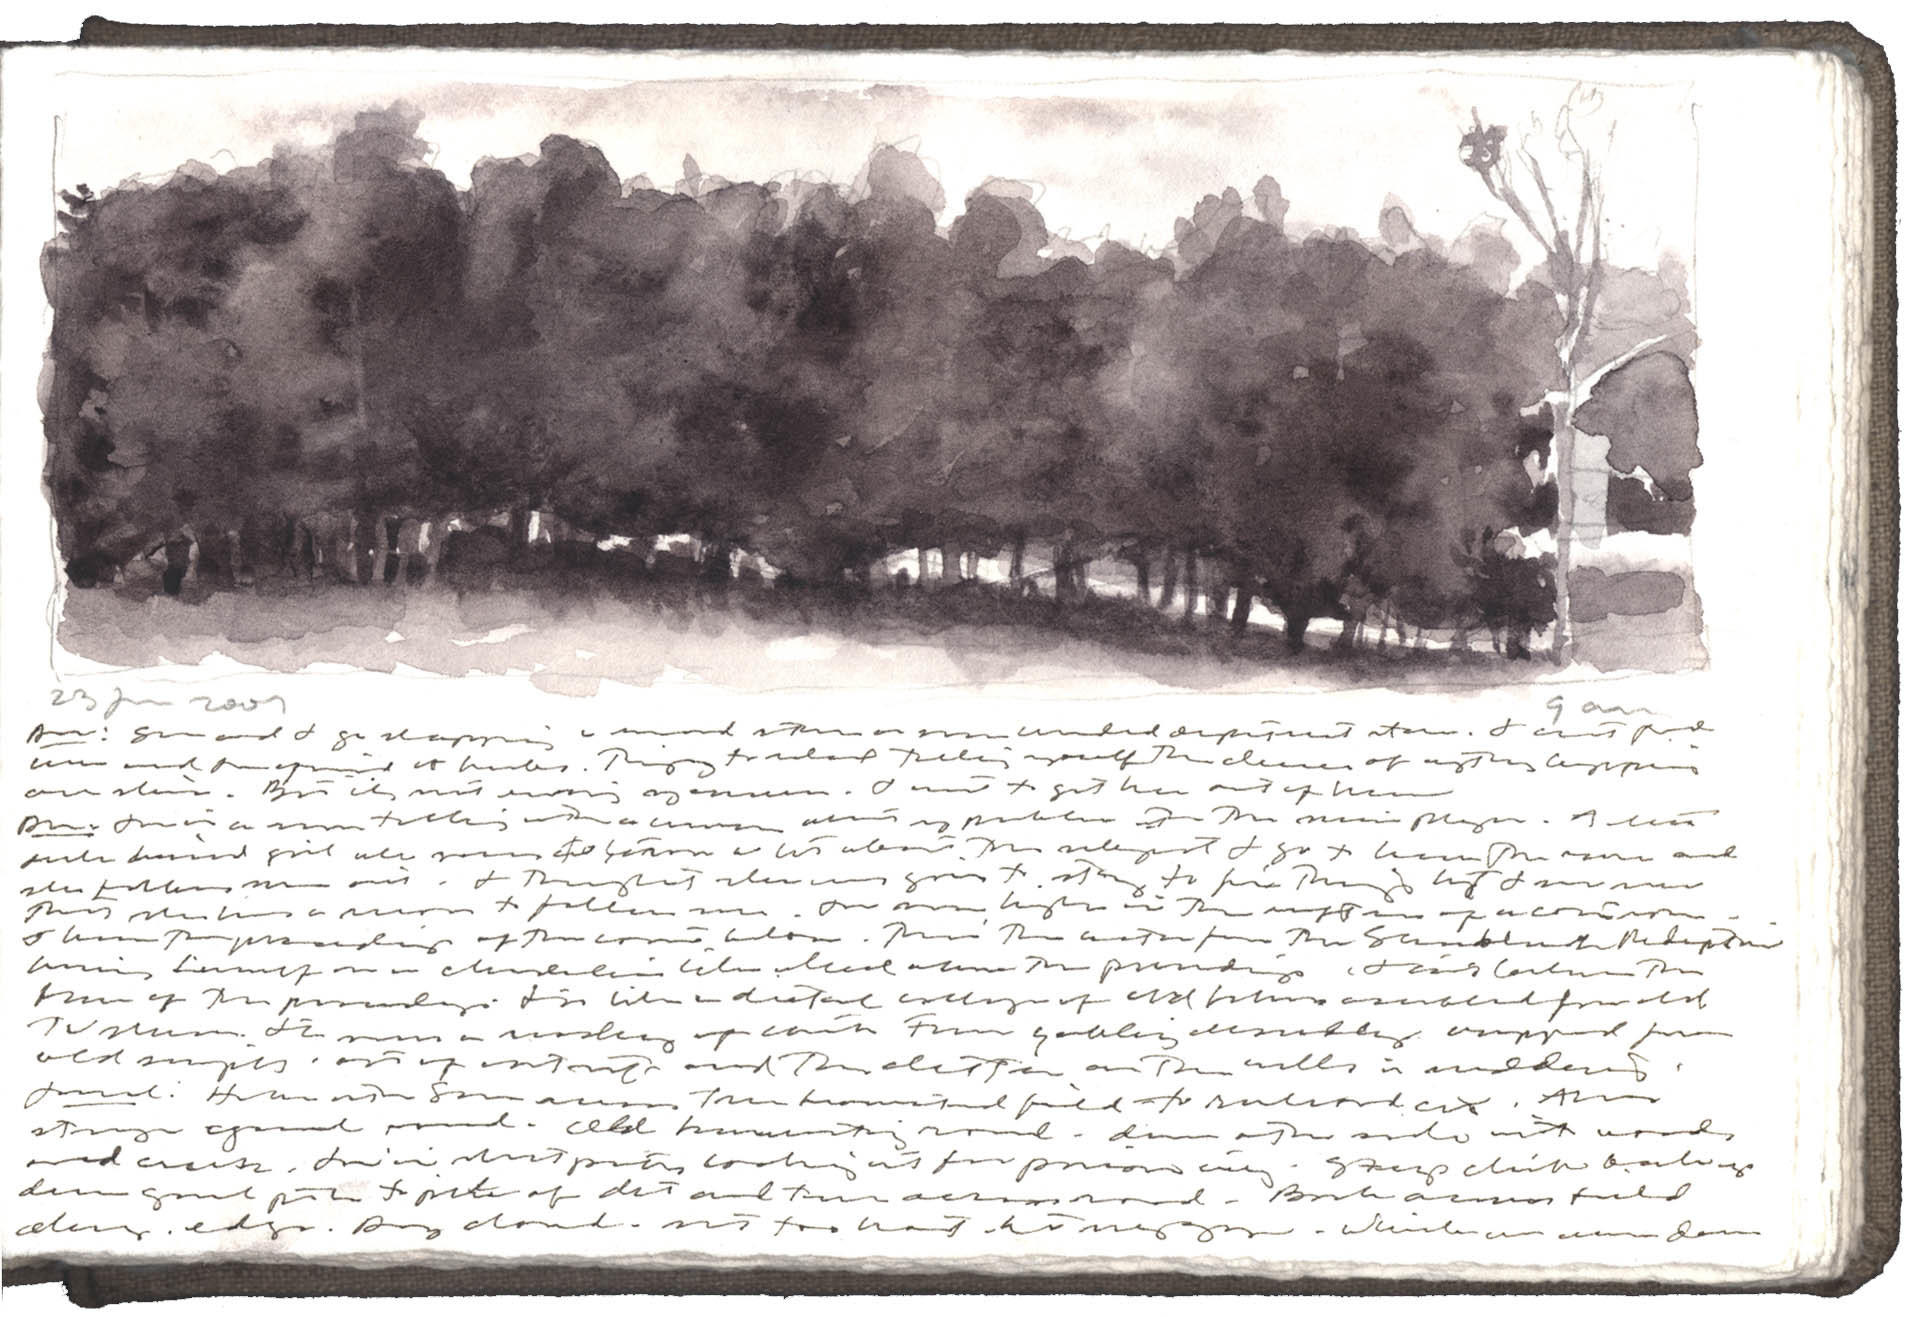 Line of Trees, Keysville, Virginia image